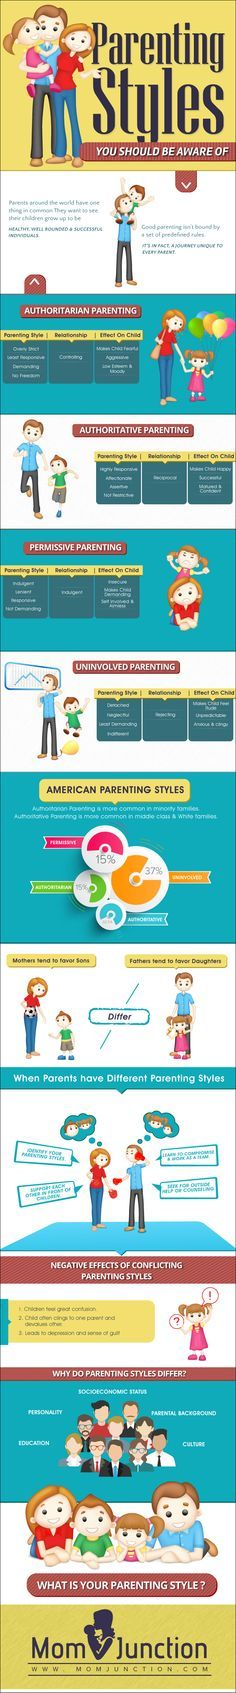 Are you aware that different parenting styles have different impact & influences a child's development. Read further to know which one is your parenting style